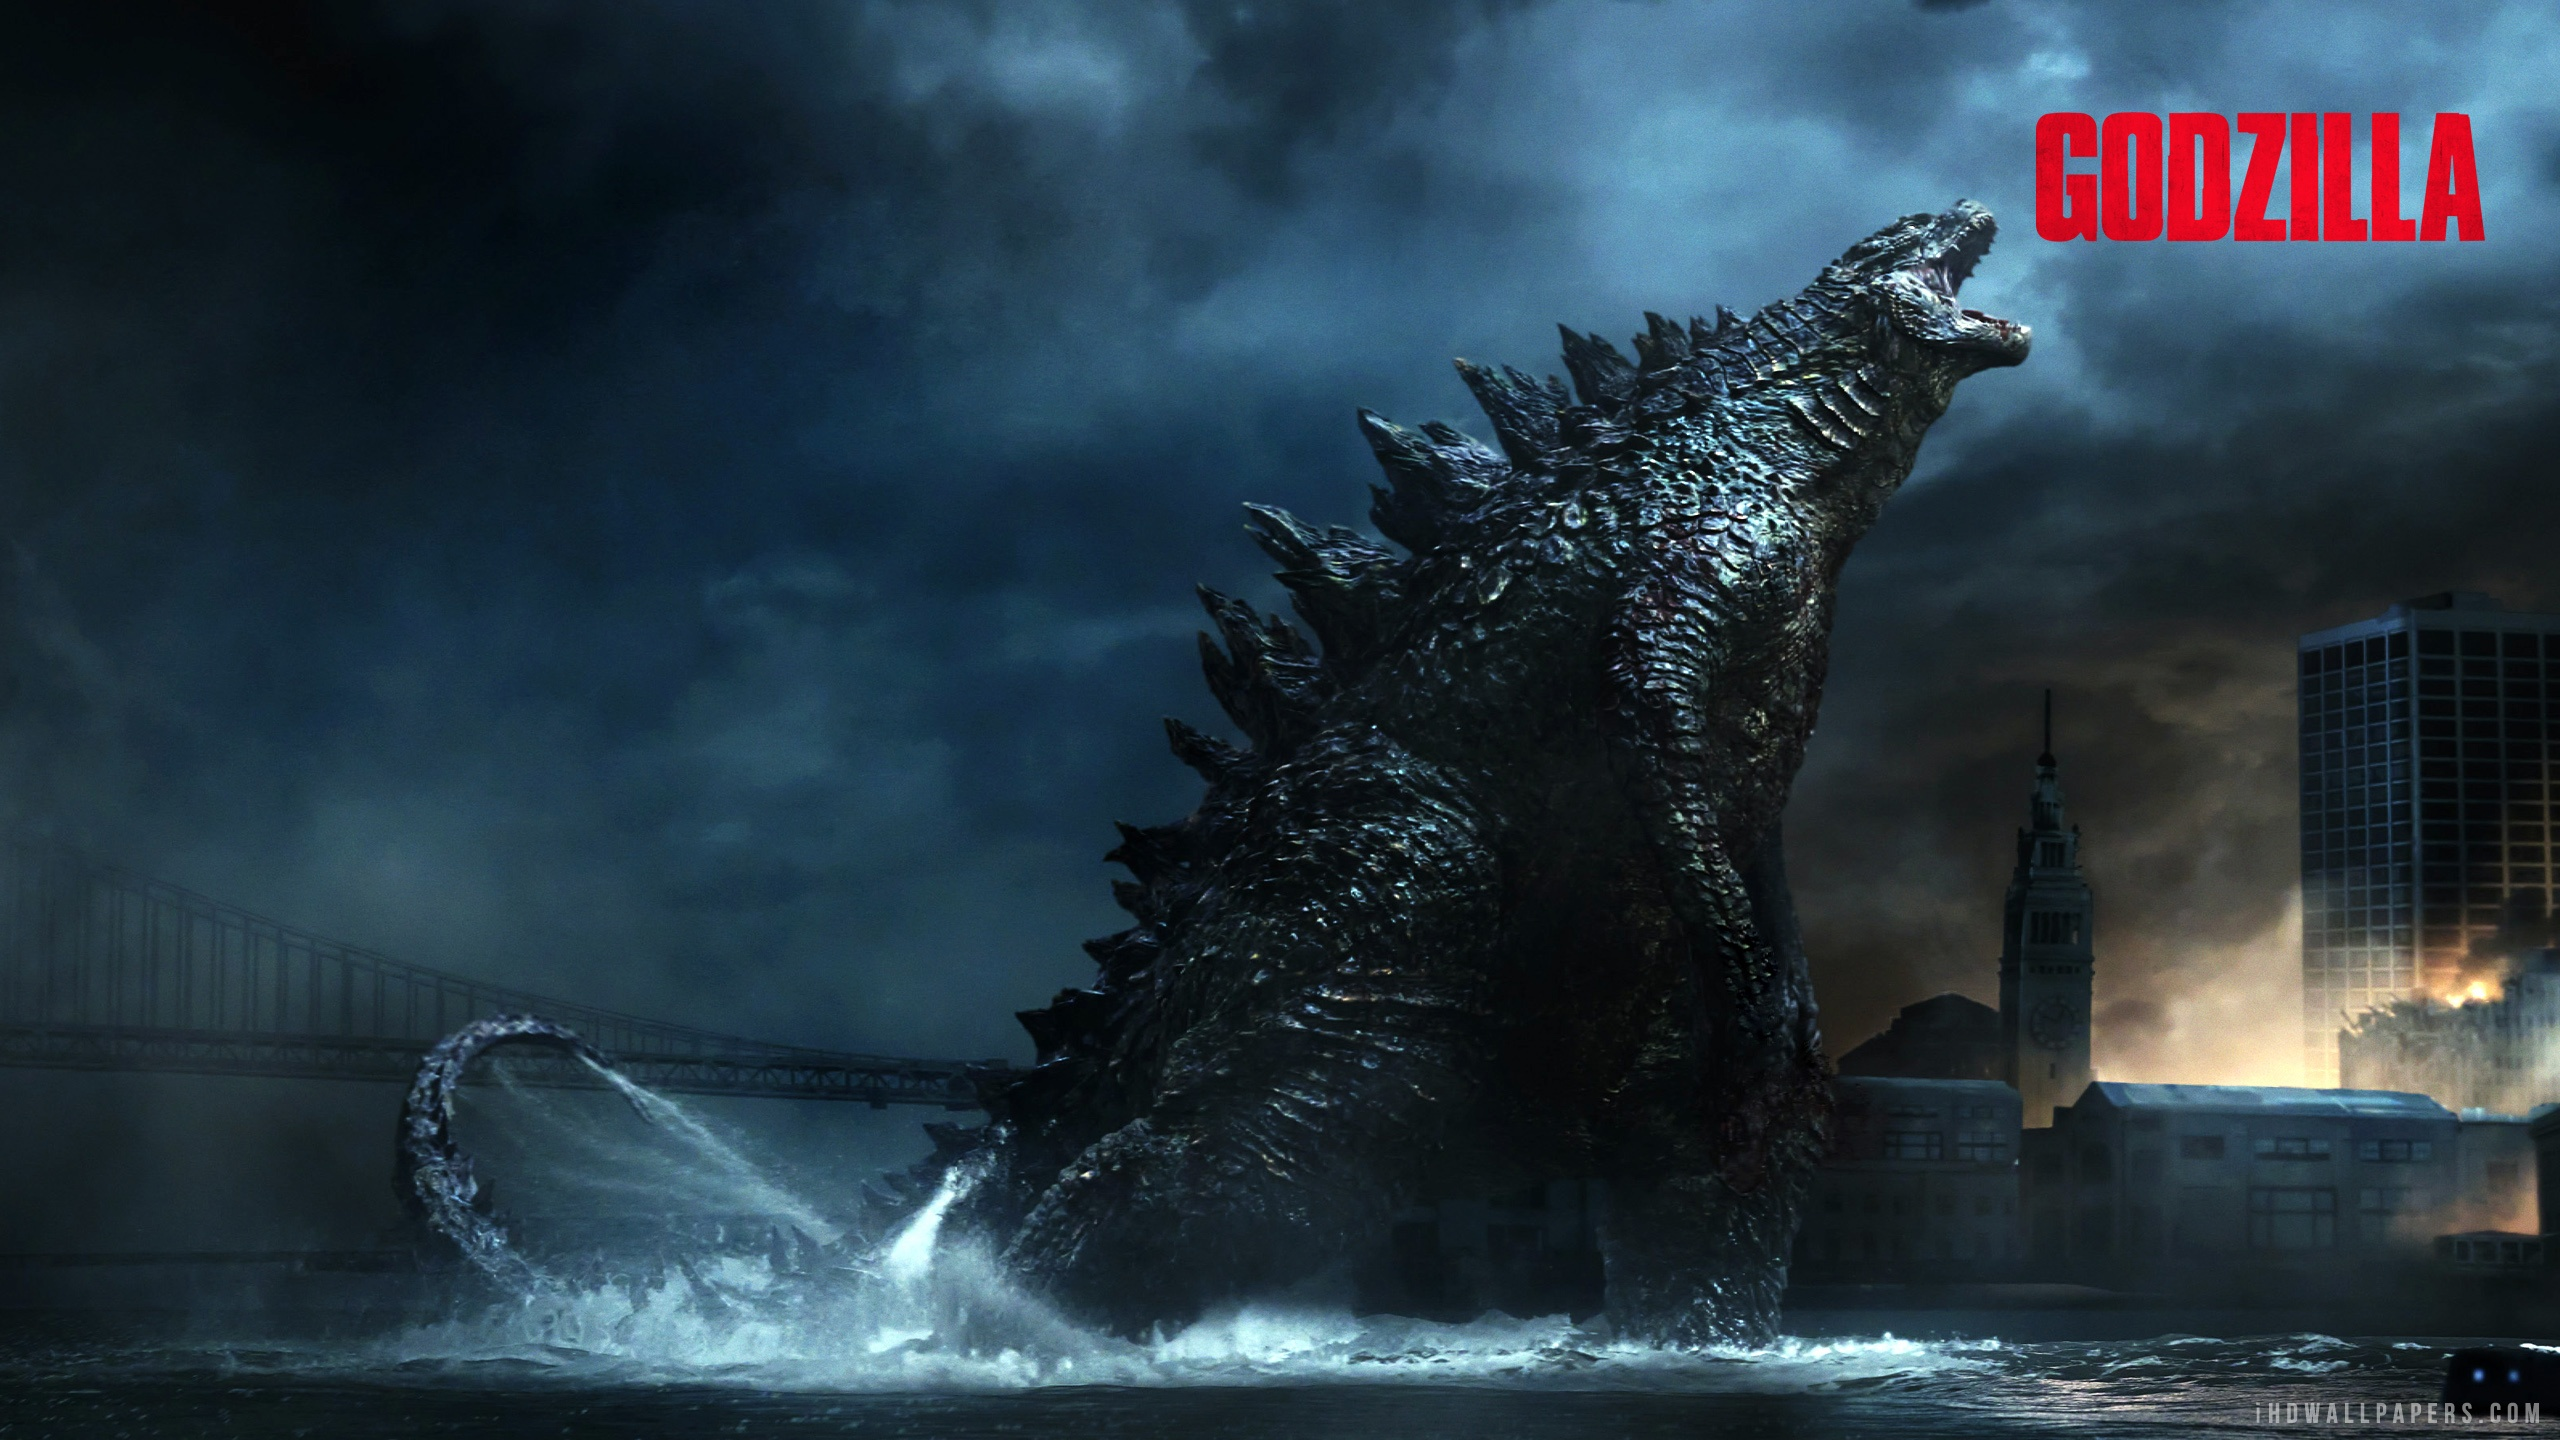 Godzilla 2014 Godzilla Mighty Roar HD Wallpaper   iHD Wallpapers 2560x1440